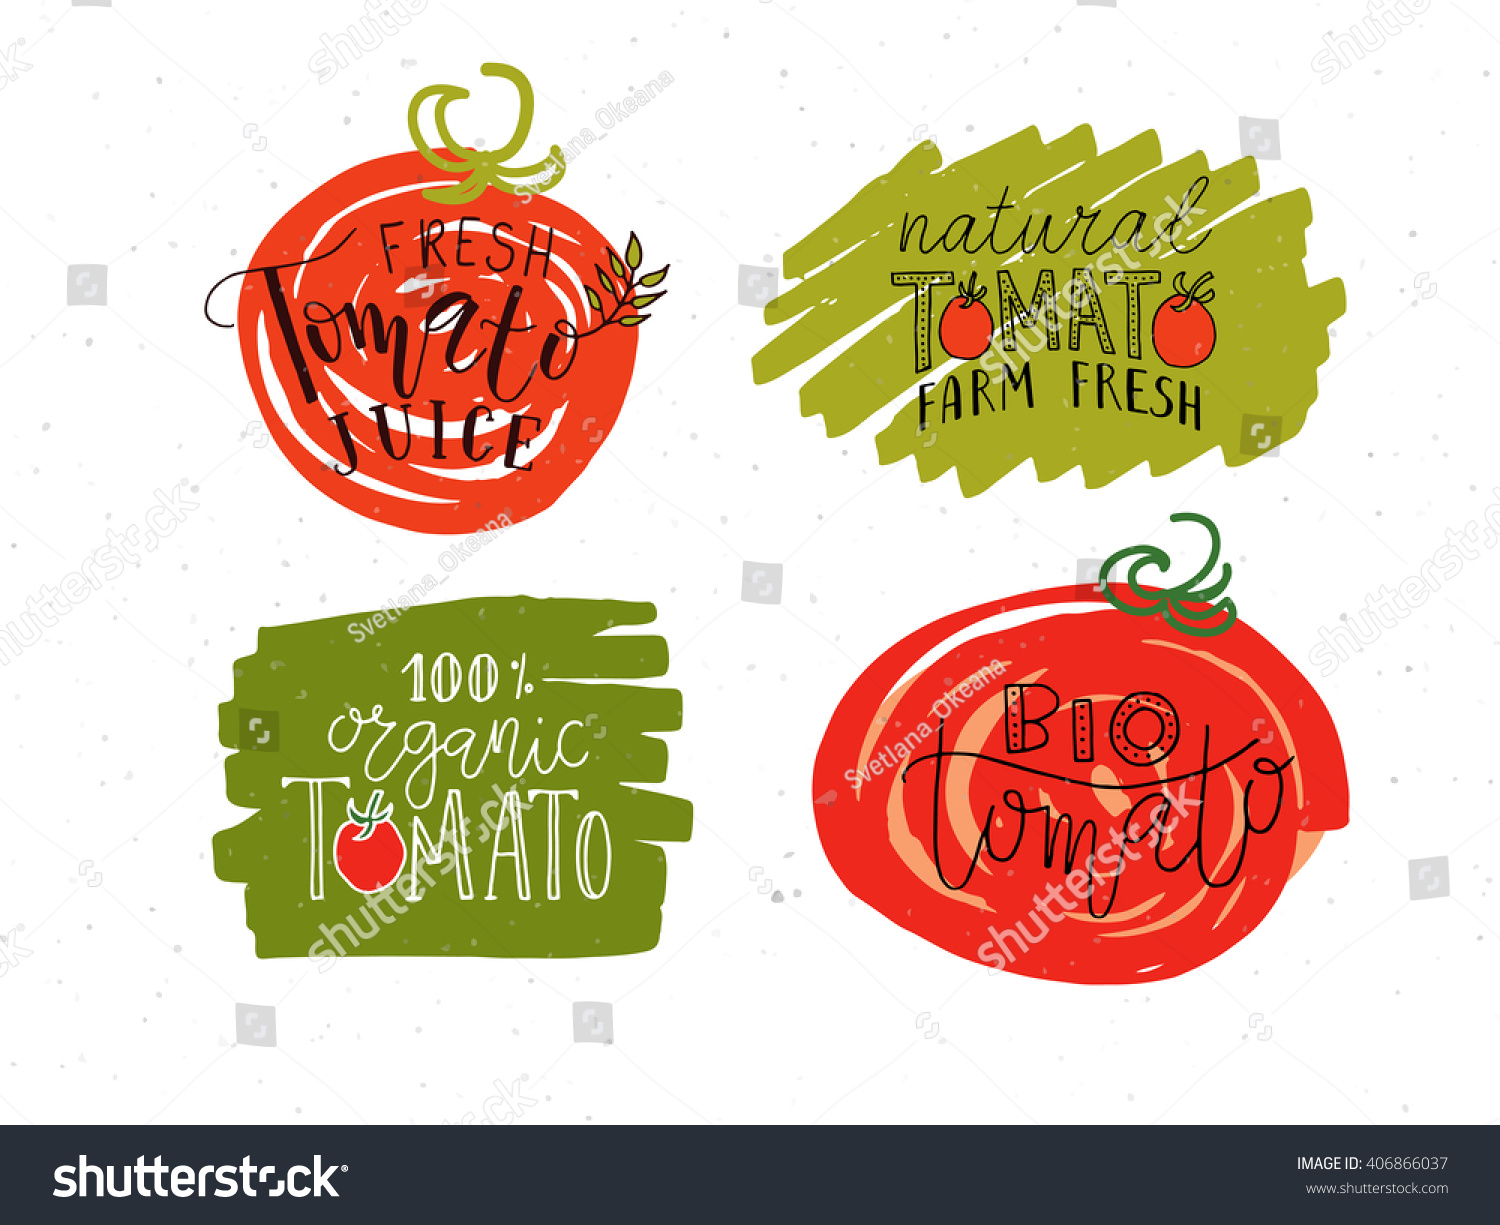 Hand sketched lettering typography set. Concept for farmers market, organic food, natural product design, juice, sauce, ketchup. Tomato calligraphy logotype, badge icon, banner, flyer